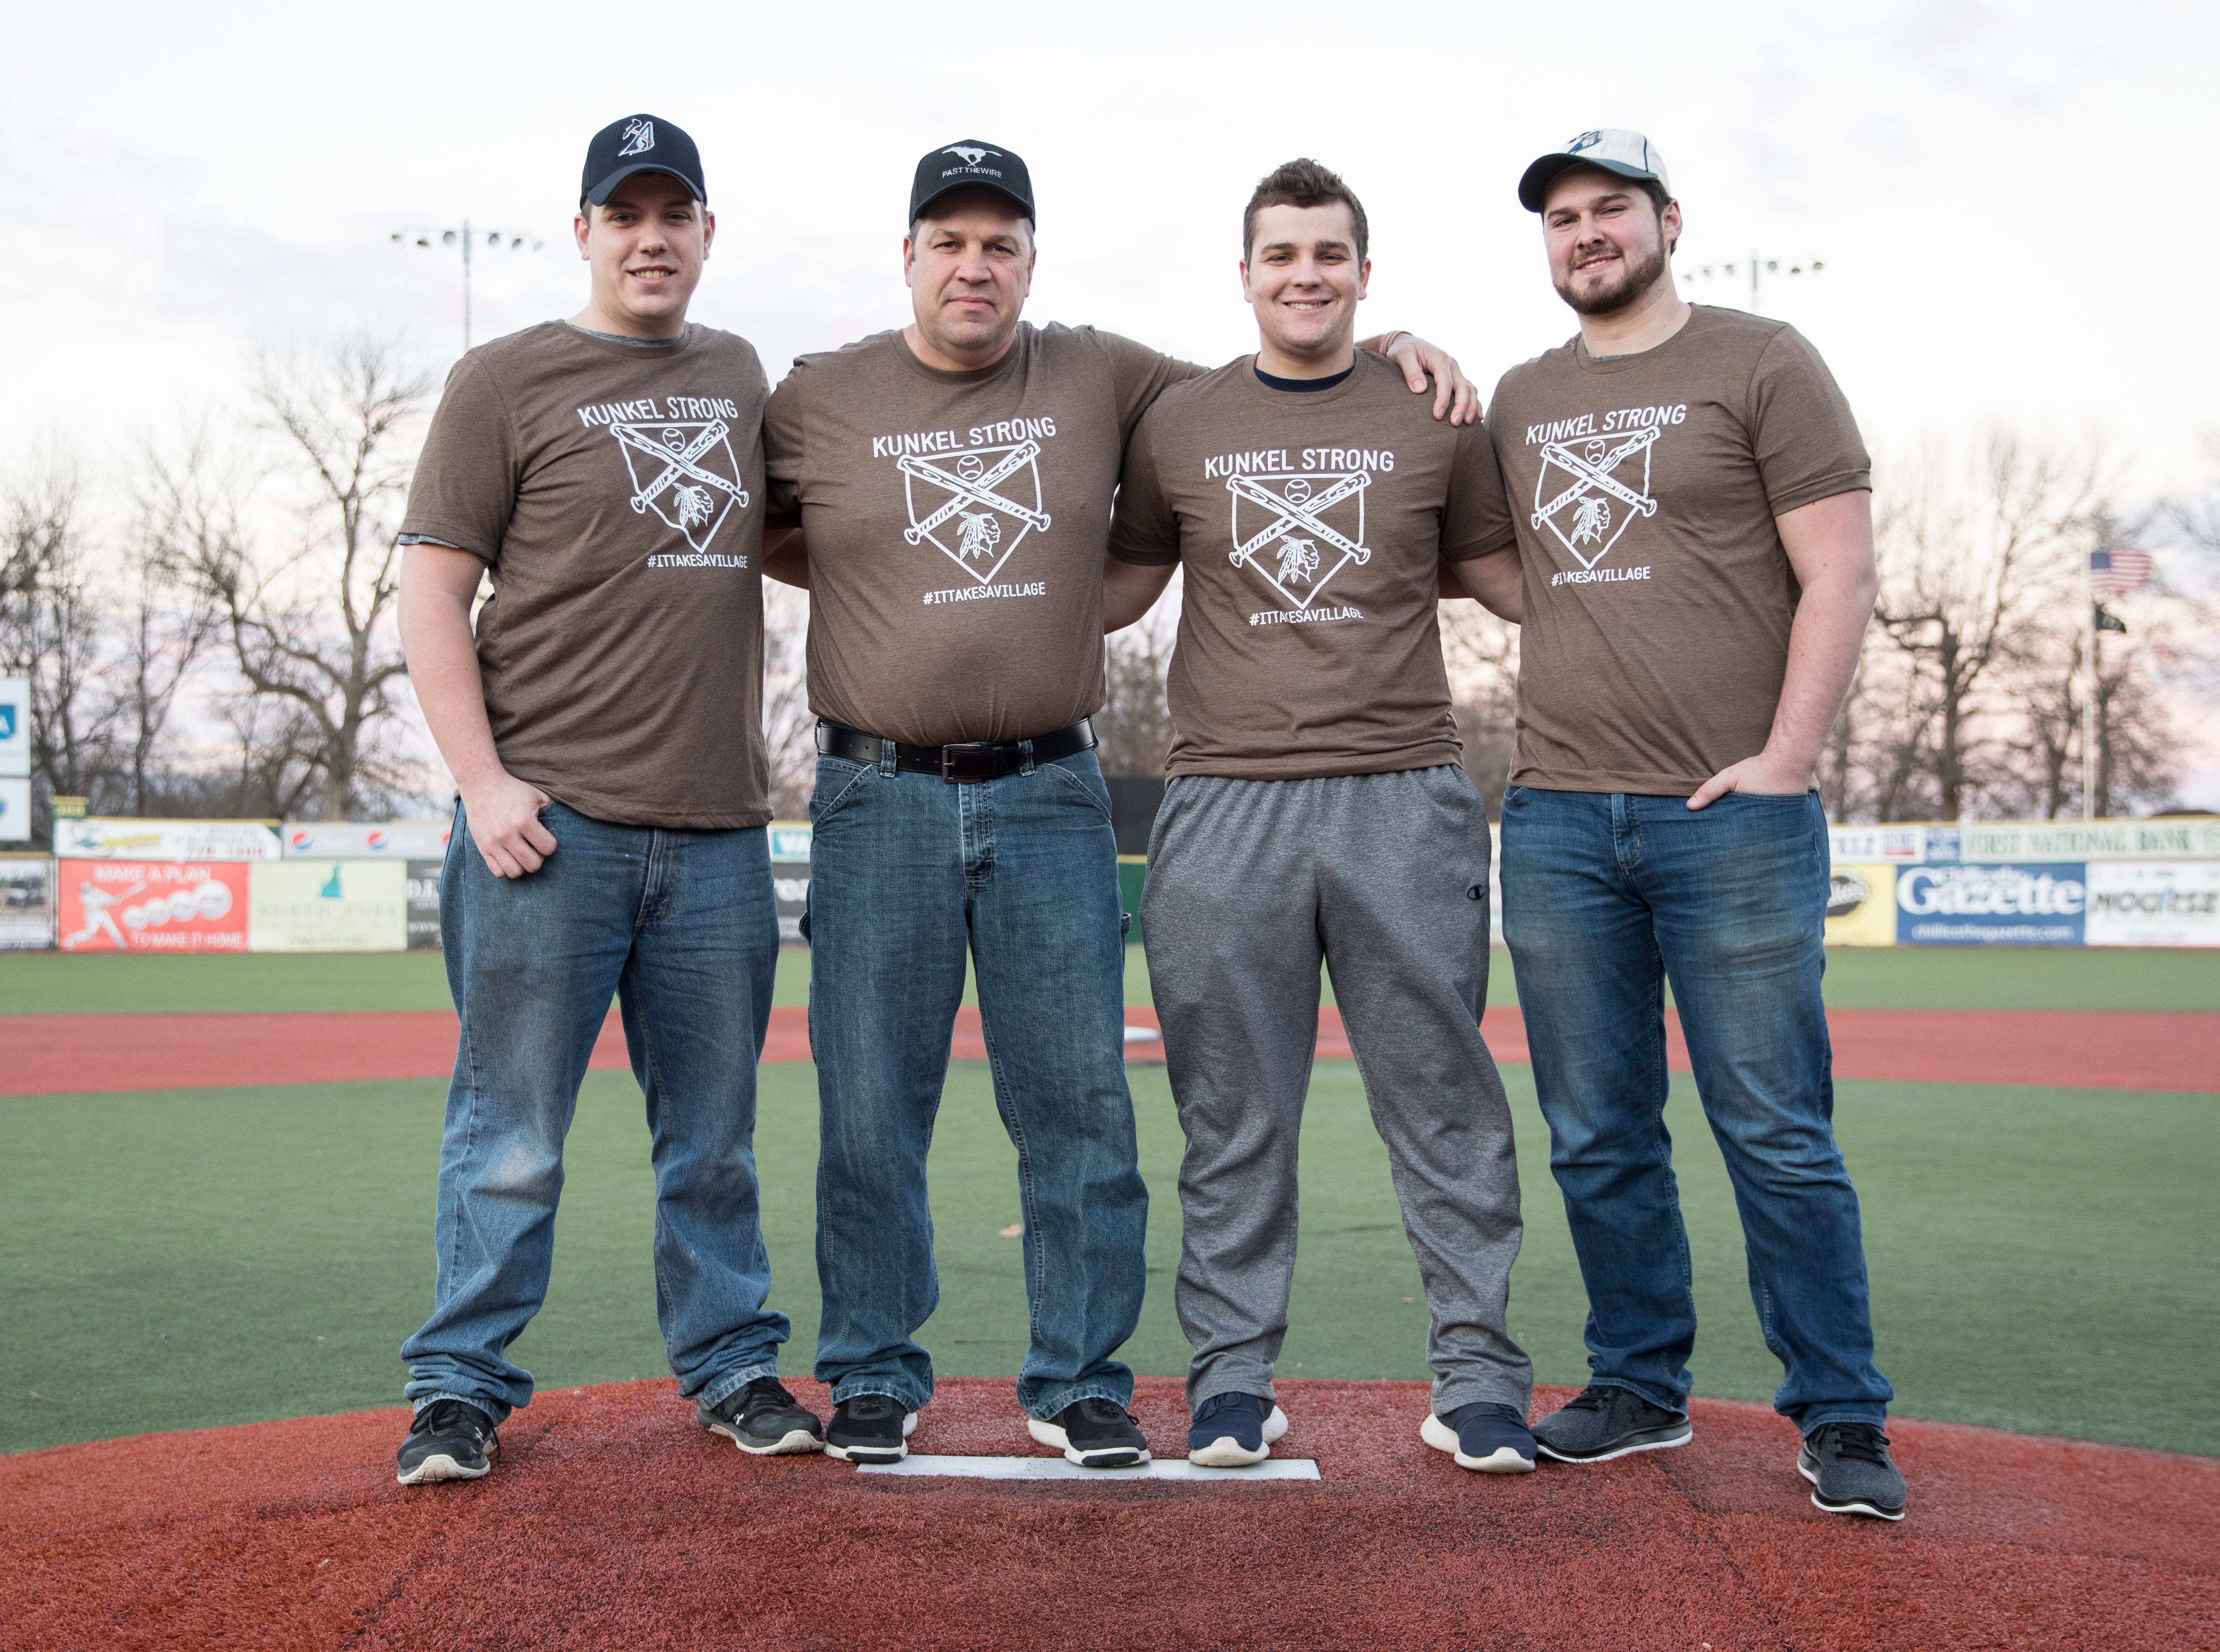 Former coach and teammates of Eli Kunkel stand on the pitcher's mound at the VA Memorial Stadium in Chillicothe, Ohio, were Kunkel and his team mates occasionally played baseball. (L-R) Nick Chester, Ron Free, Gunnar Free, and Andrew Woods.